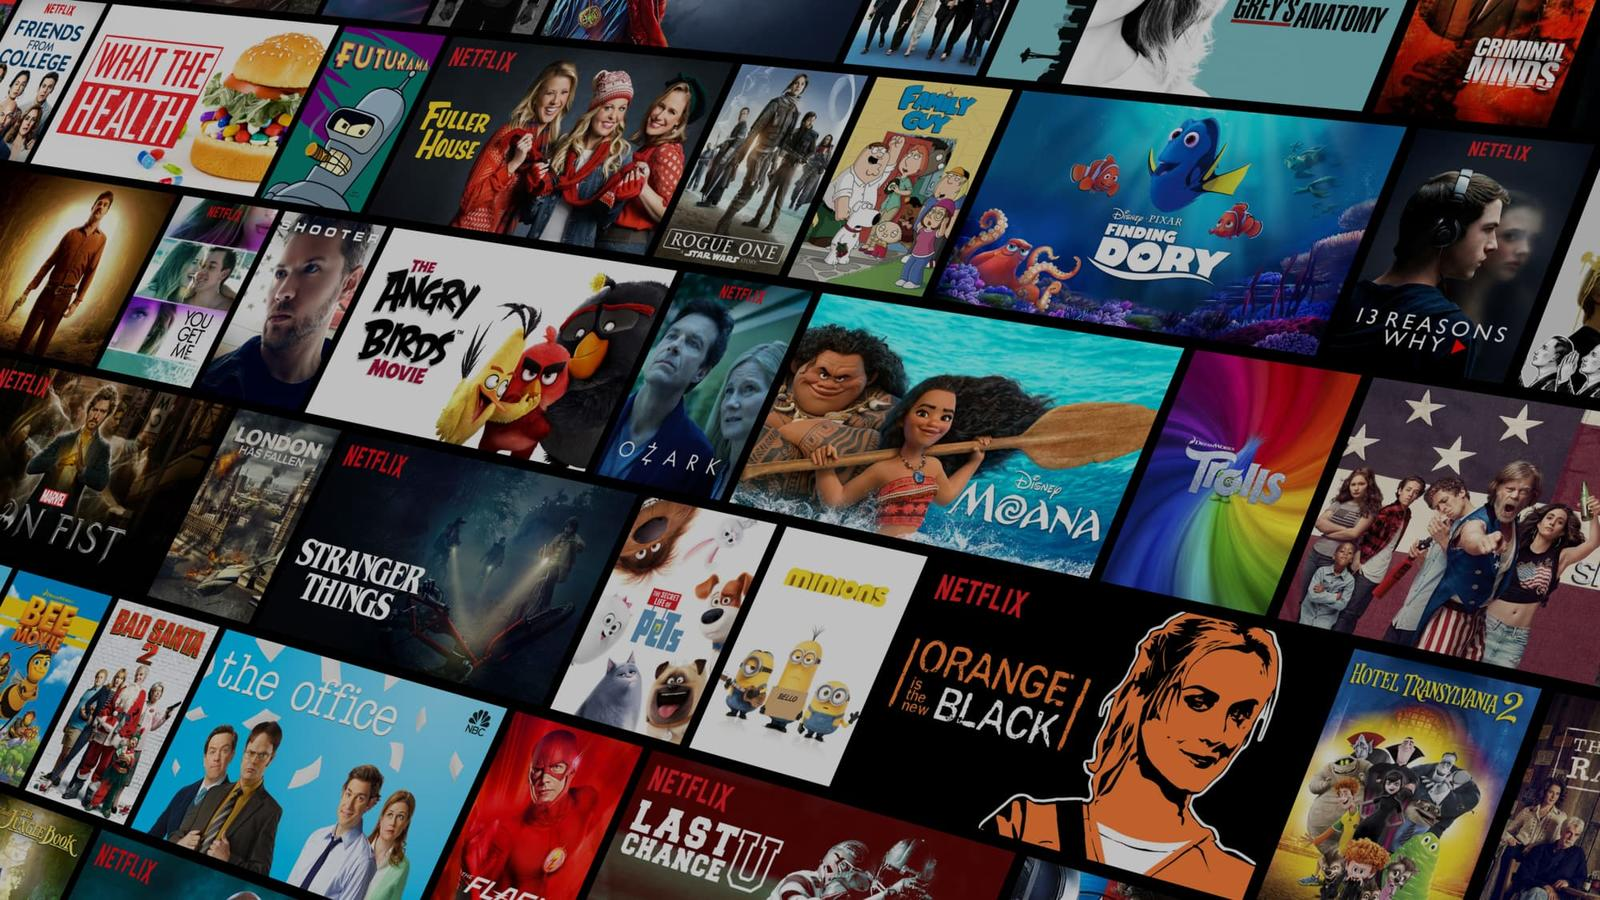 Netflix has the best movies you can stream according to Rotten